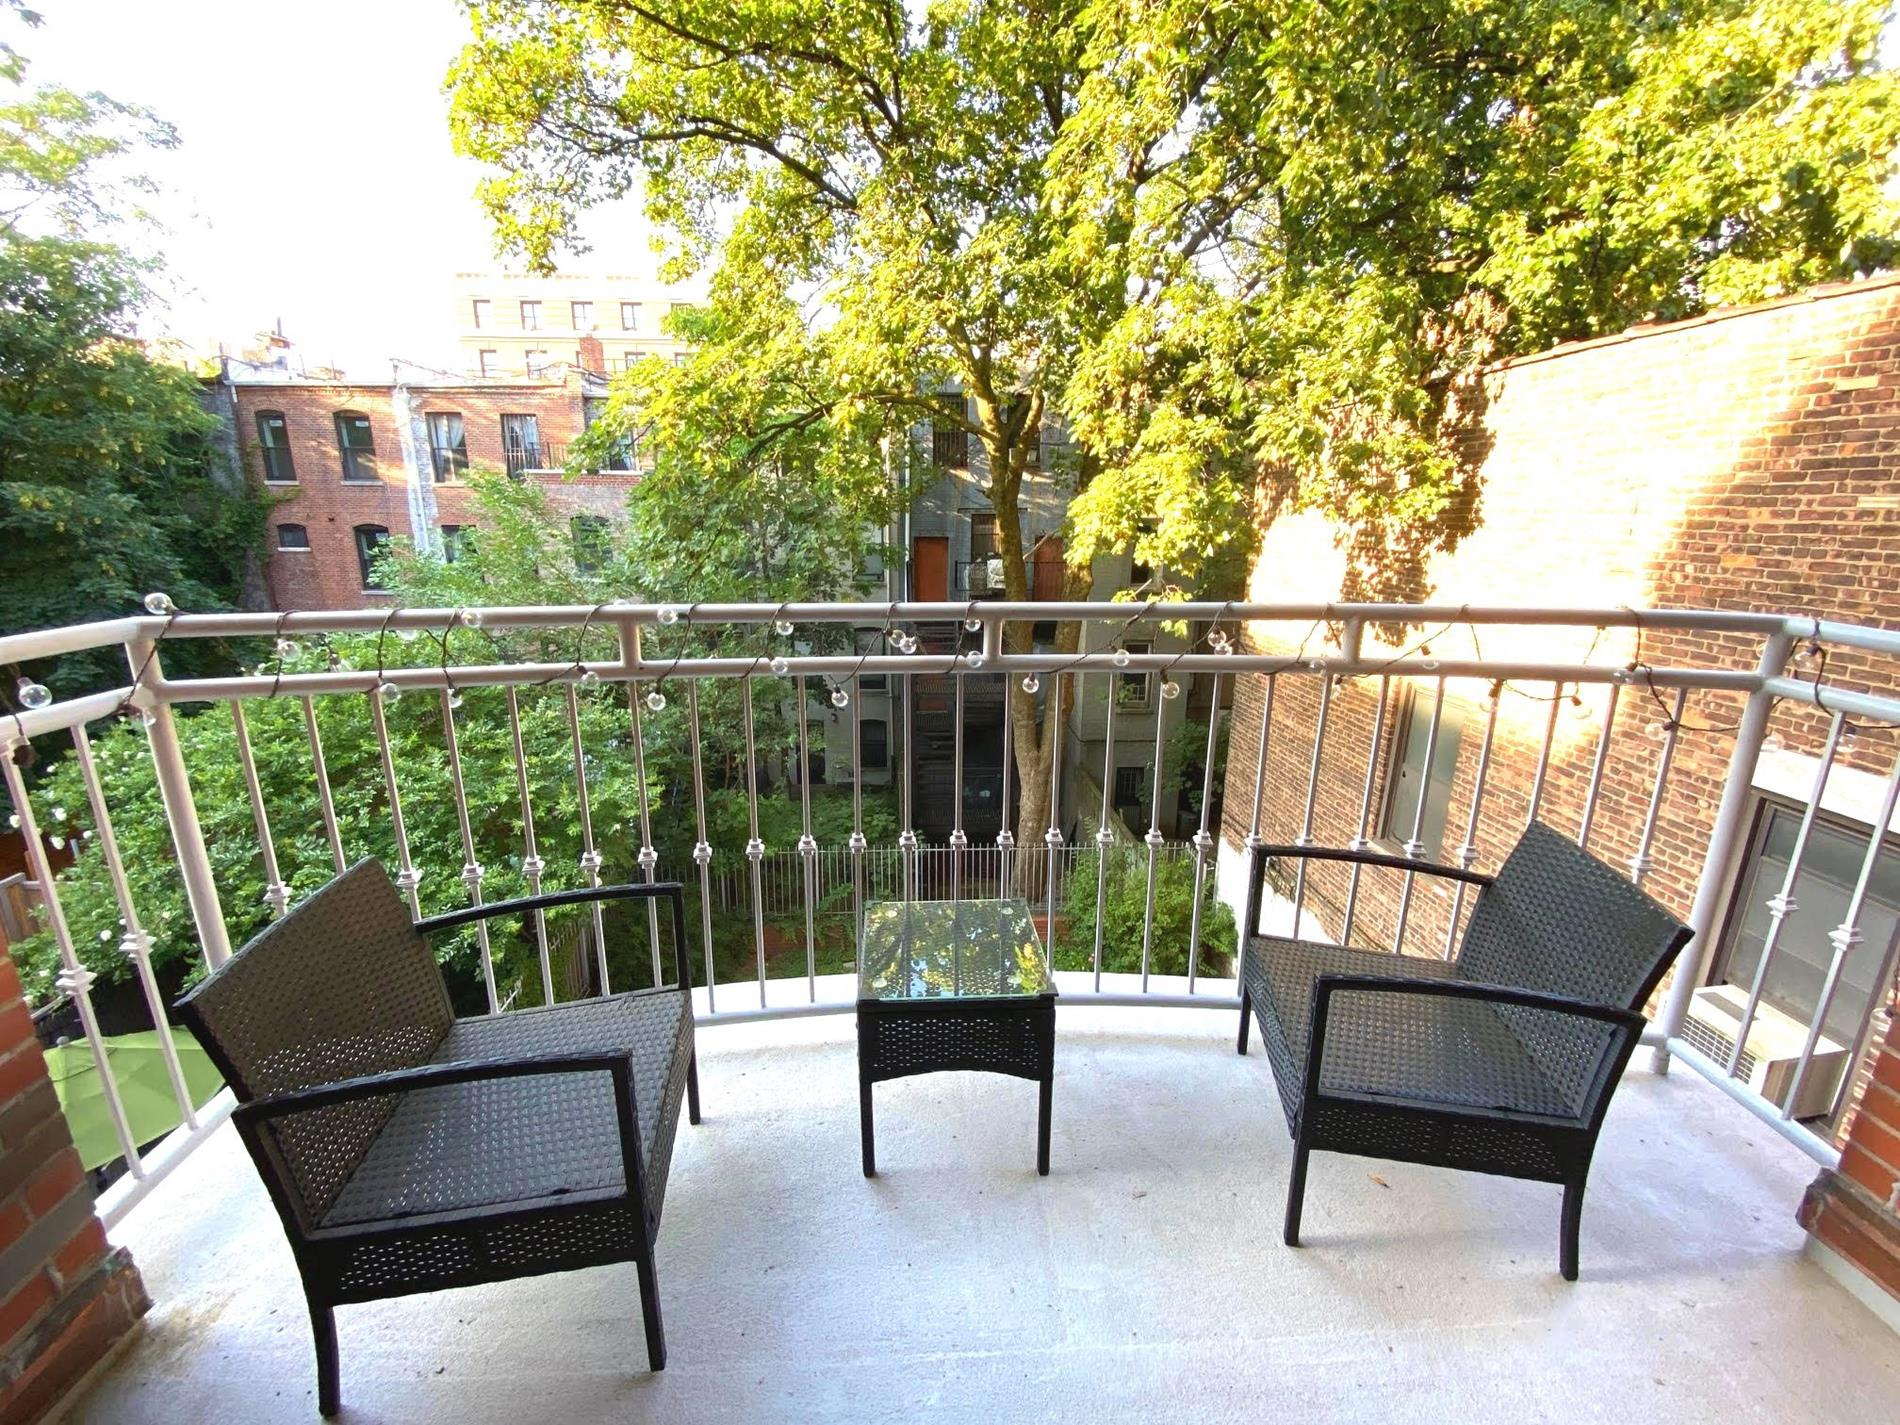 Enjoy large two bedroom apartment in historical Hamilton Heights for a great price. The building is conveniently located close to the Riverside Park, 5 minutes from Broadway with lots of great cafes, restaurants, bars, supermarkets and shops, just 2 blocks from 1 train and close to A,B,C,D trains. You can also benefit from a full size pool and gym at Riverside Sate Park. The building has intercom and key elevator, video security system and a garden. Only two units per floor. The apartment has two split bedrooms with two full bathrooms. Open kitchen is equipped with granite counter top, stainless steel appliances including dishwasher and microwave. Living room has a wonderful balcony facing the garden. The apartment has a total of 5 walk-in closets, washing and drying machines, hardwood floors, A/C, individual heat control. Close to Columbia.